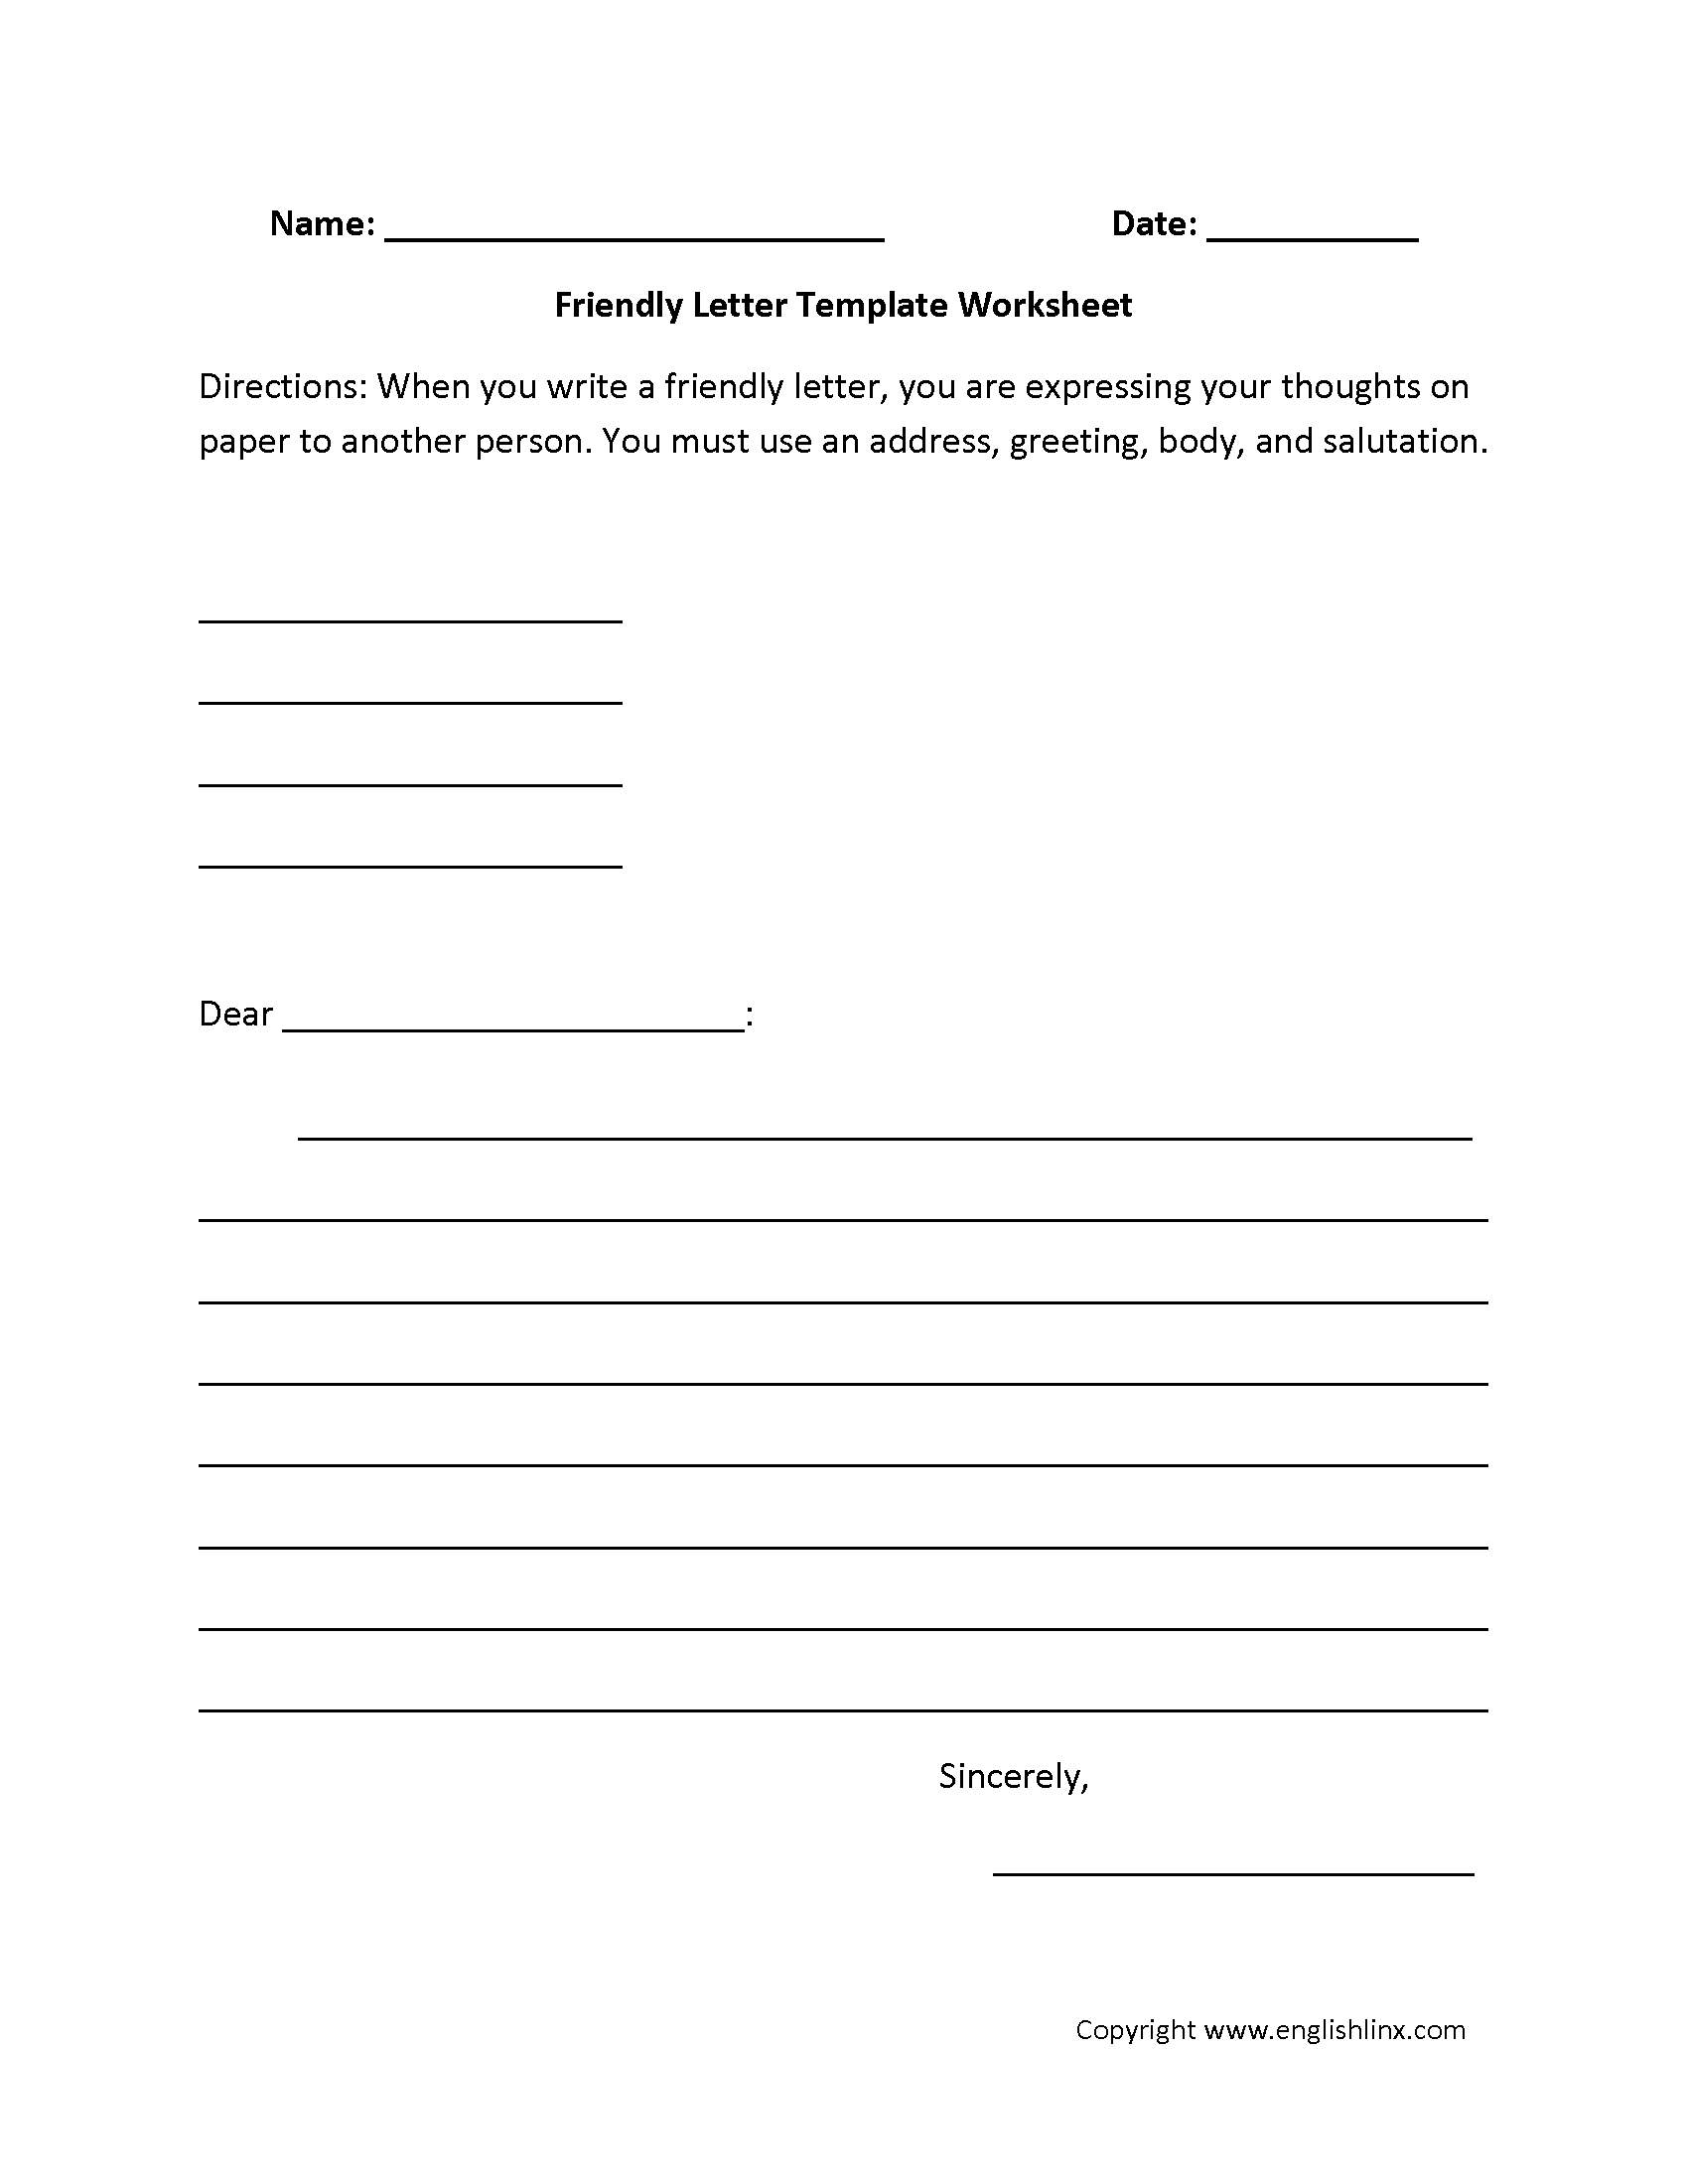 How To Write Letter Simple Letter Writing Worksheets  Engwriting  Pinterest  Writing .